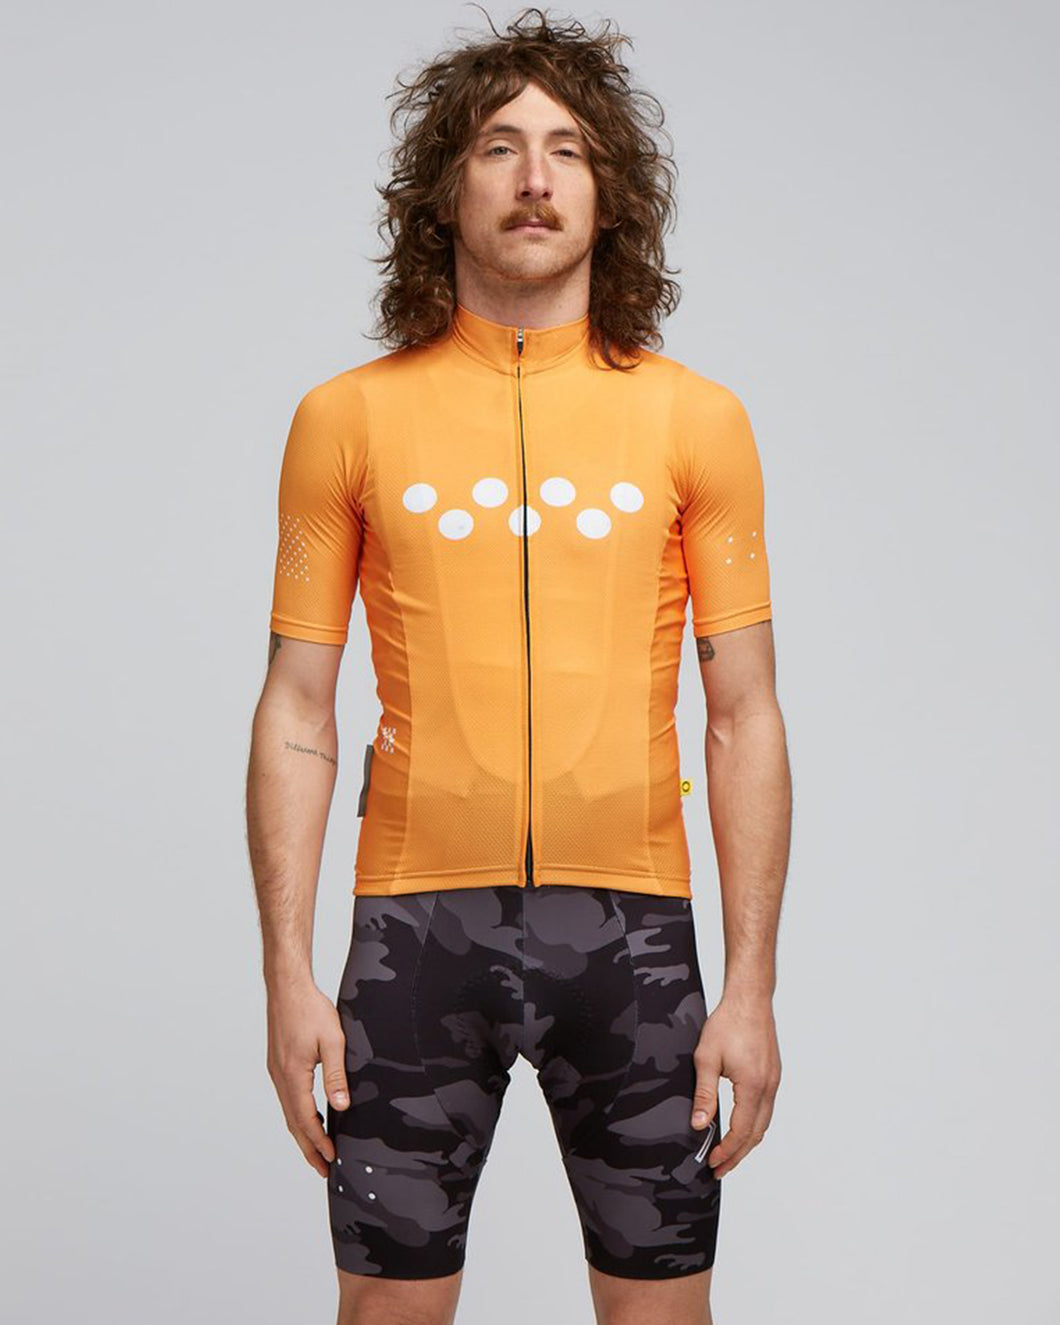 Pedla Man's Core / Luna Air Jersey - Orange